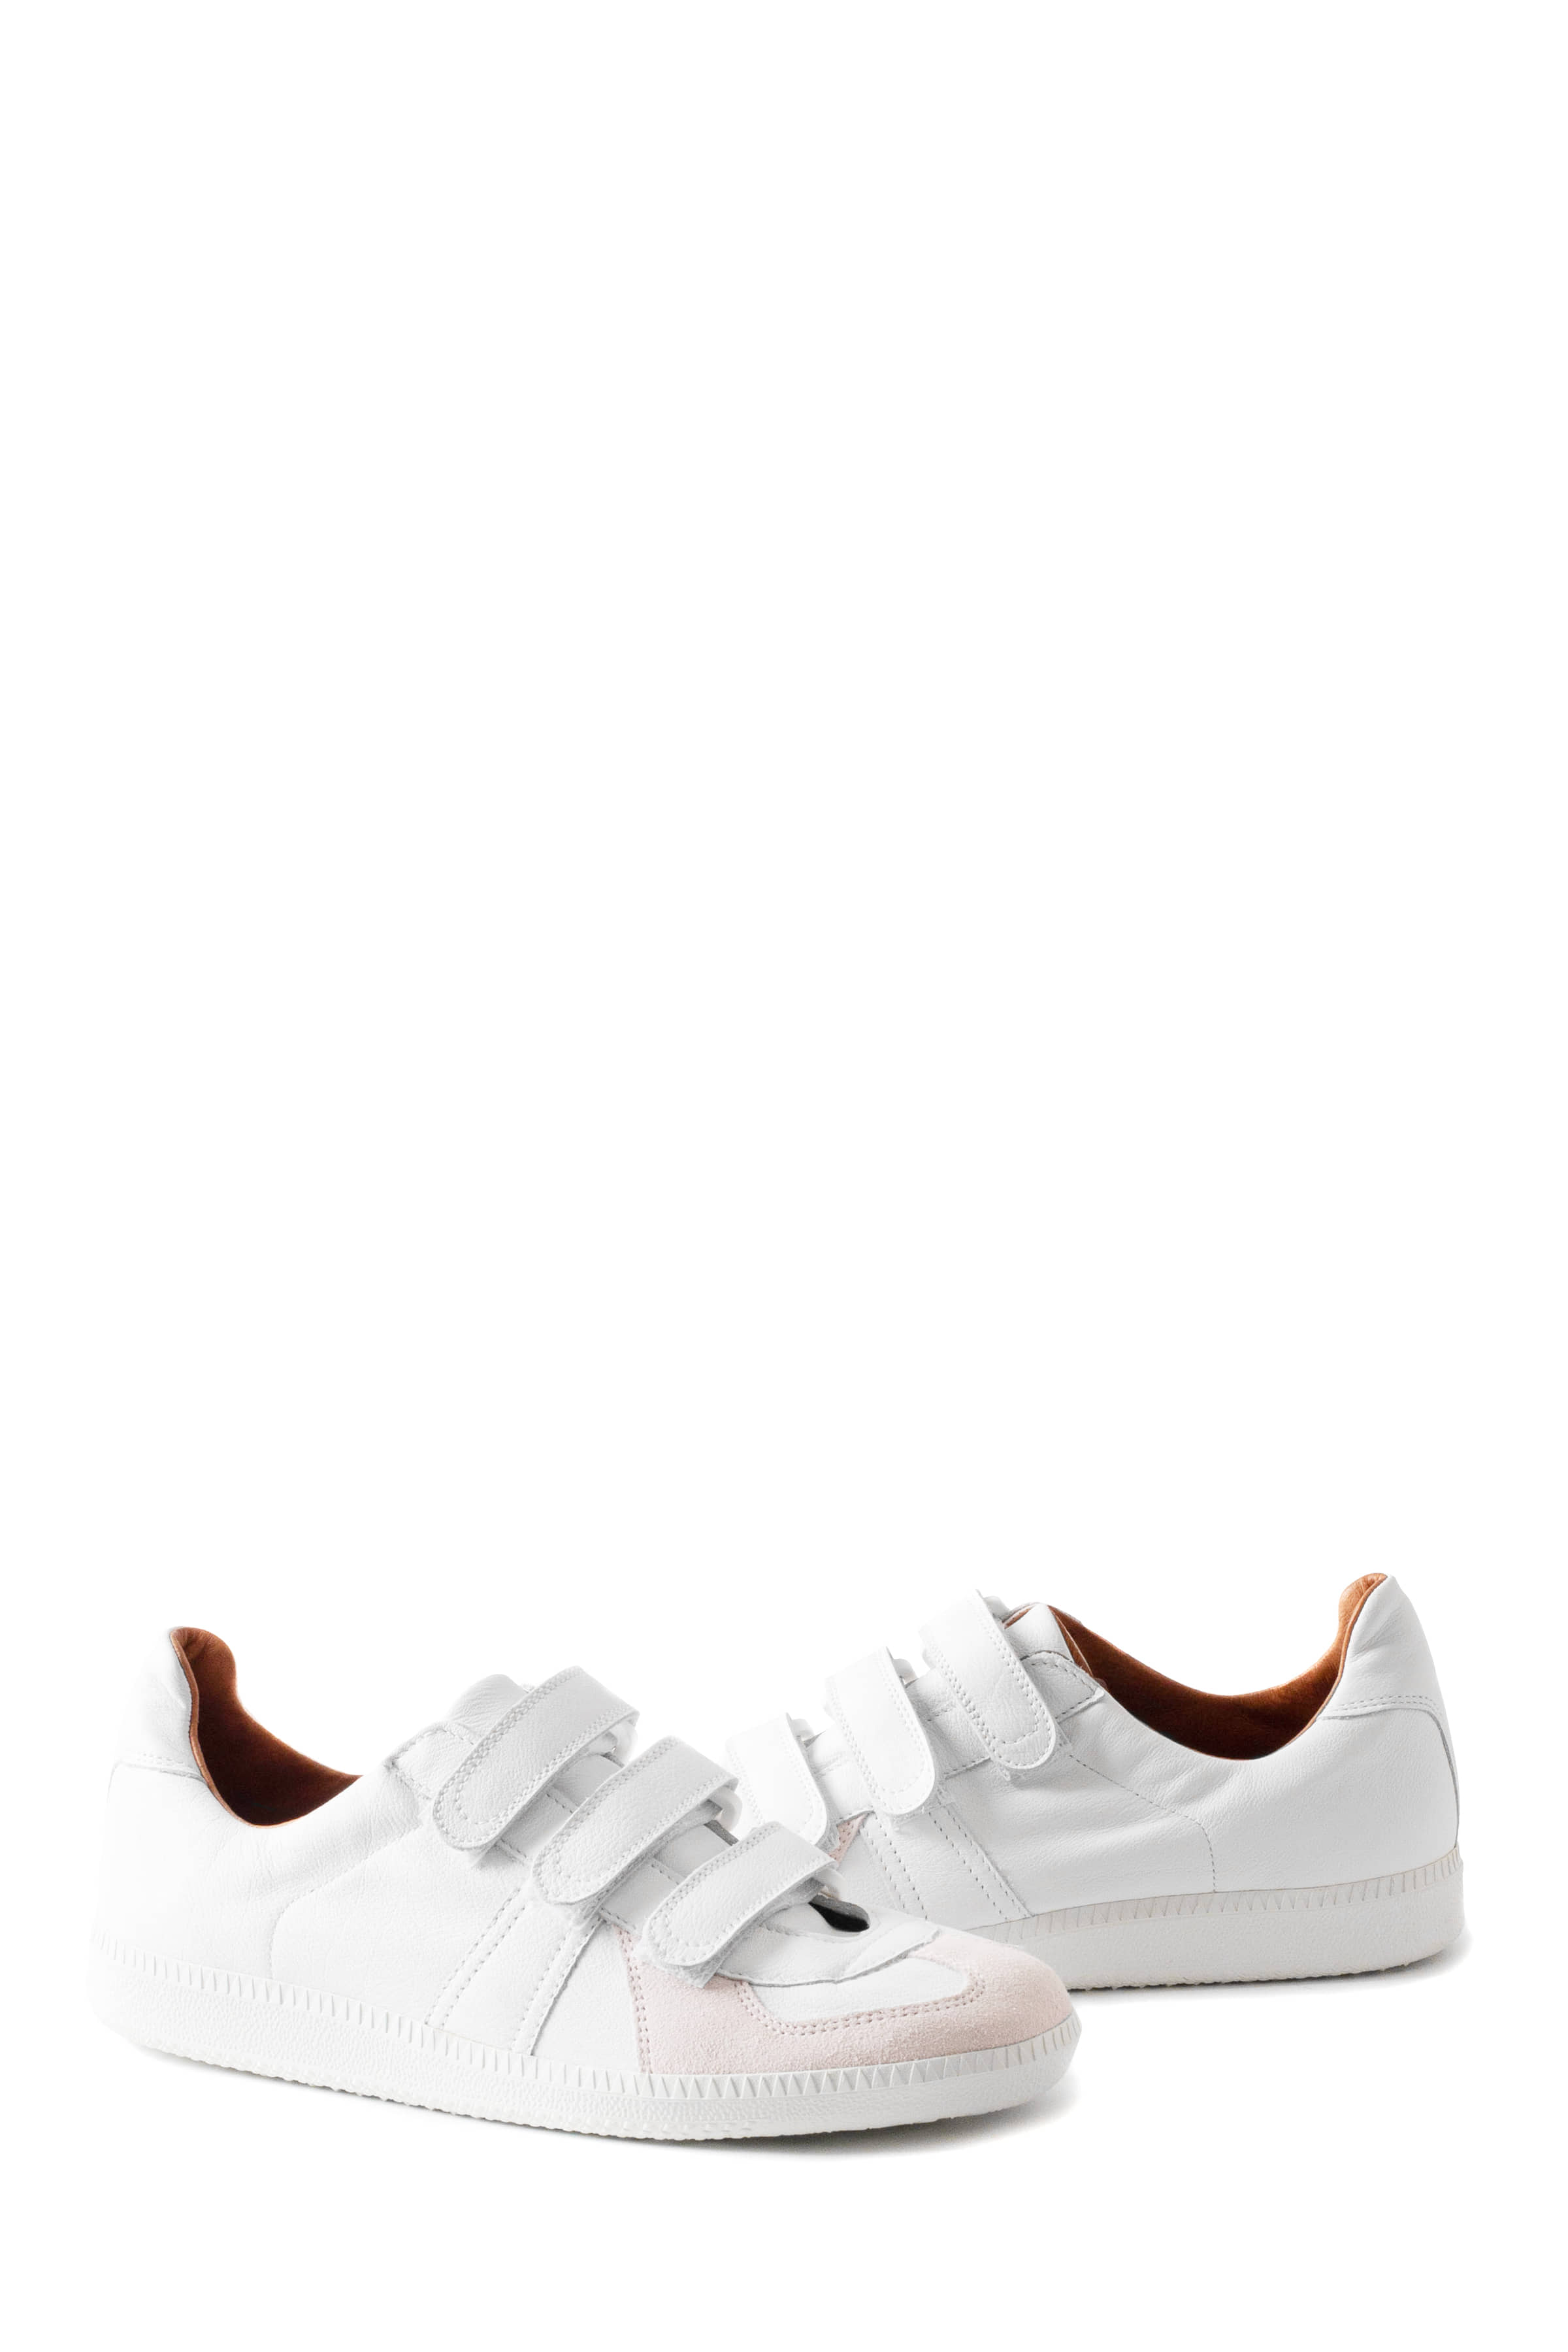 REPRODUCTION OF FOUND : German Velcro Military Trainer (White)